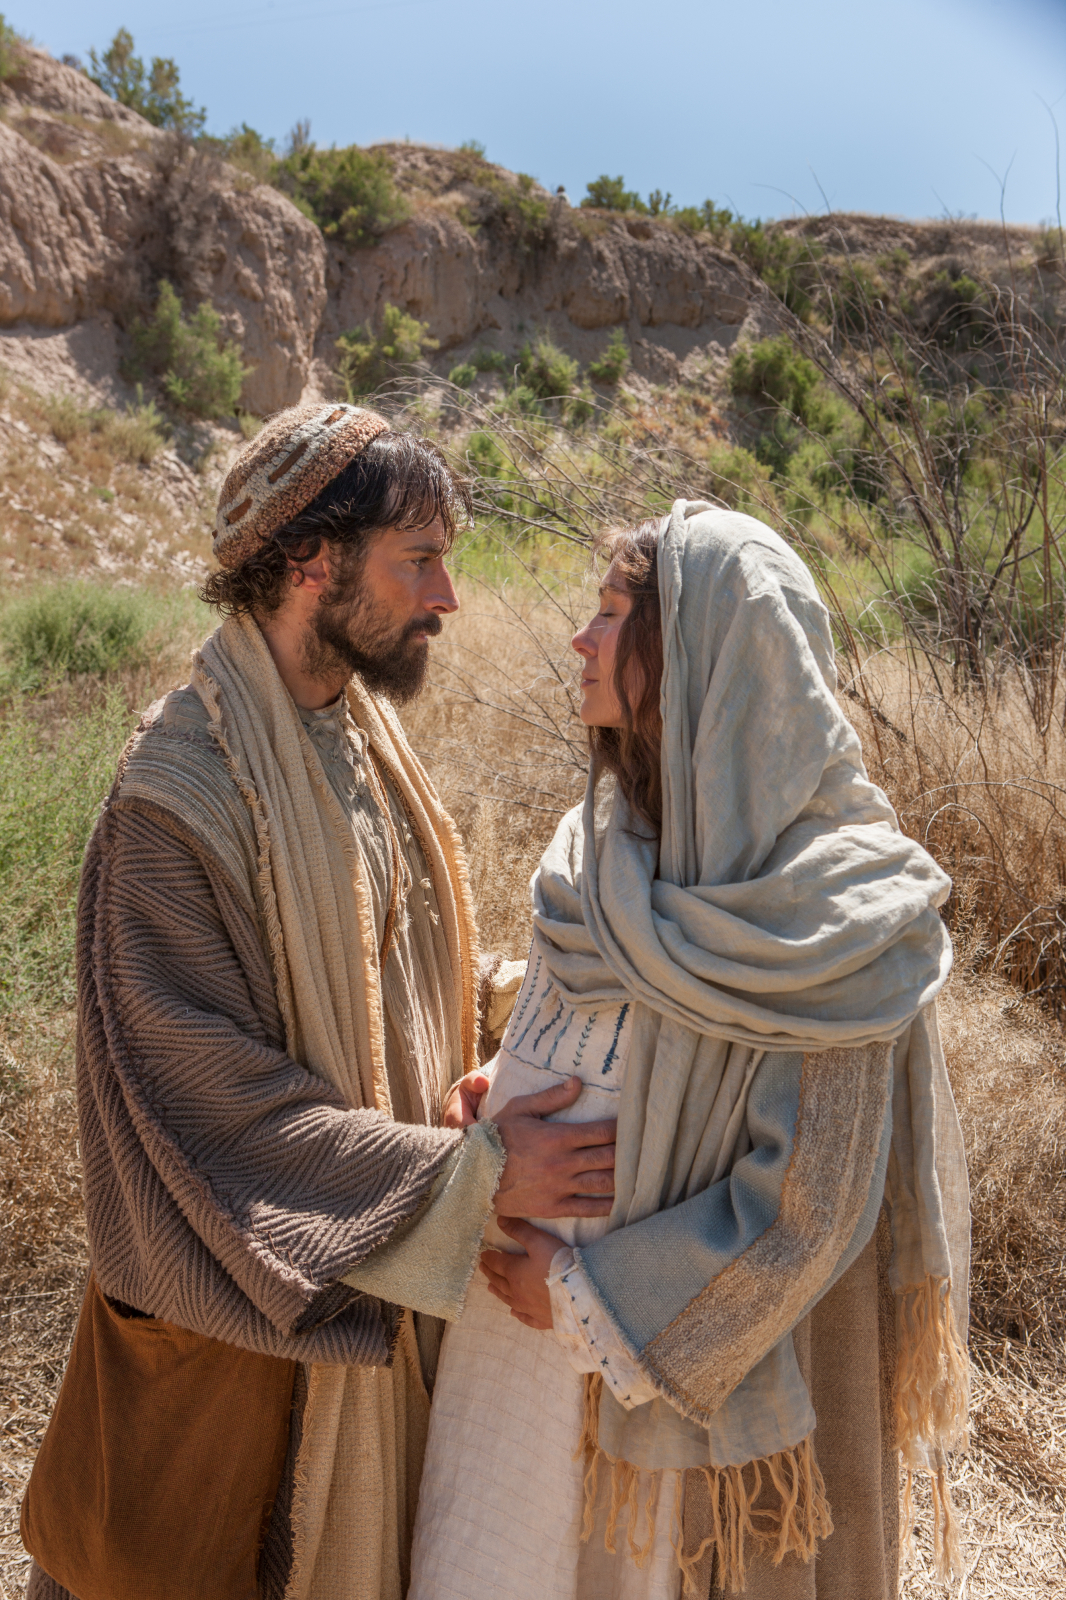 Joseph Und Joseph Mary And Joseph